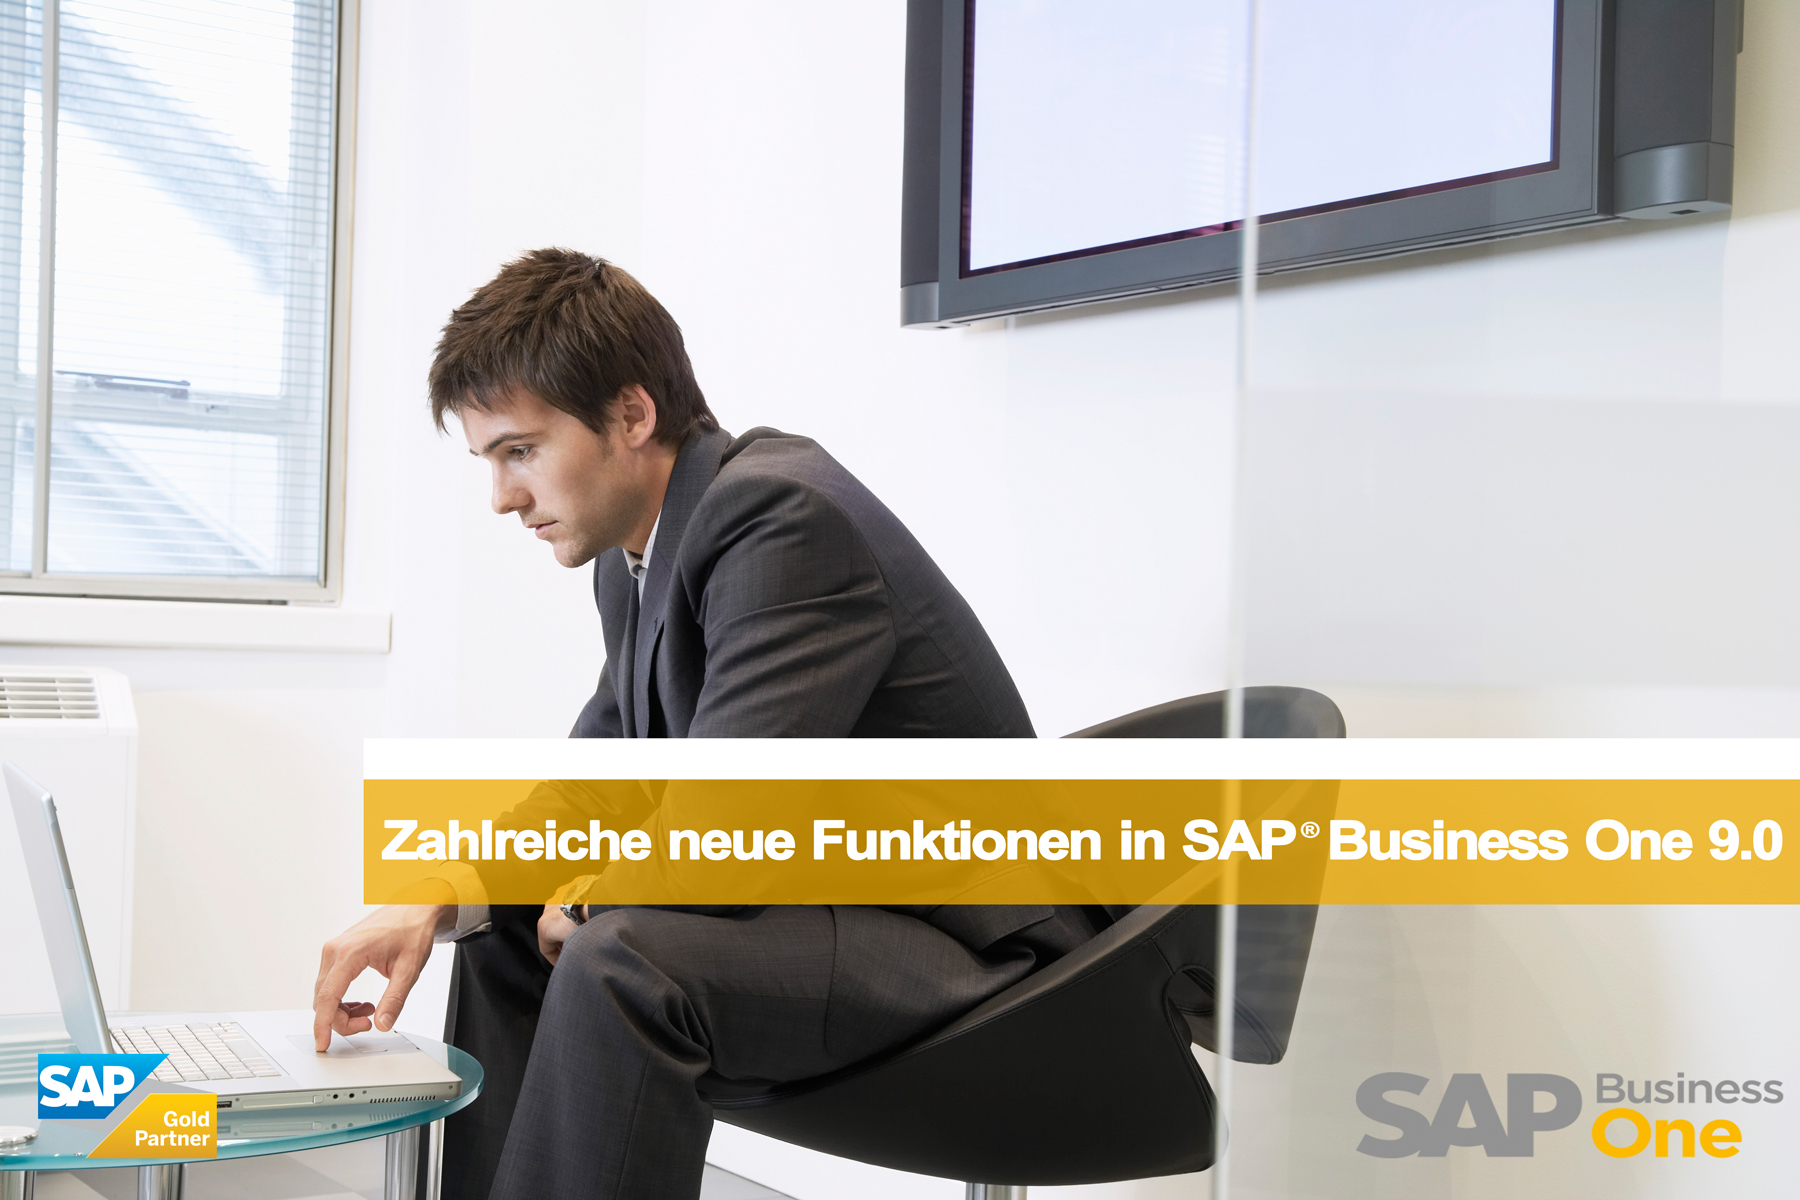 Weboptimiert2_17_01_2013_SAP_BUSINESS_ONE_9_0